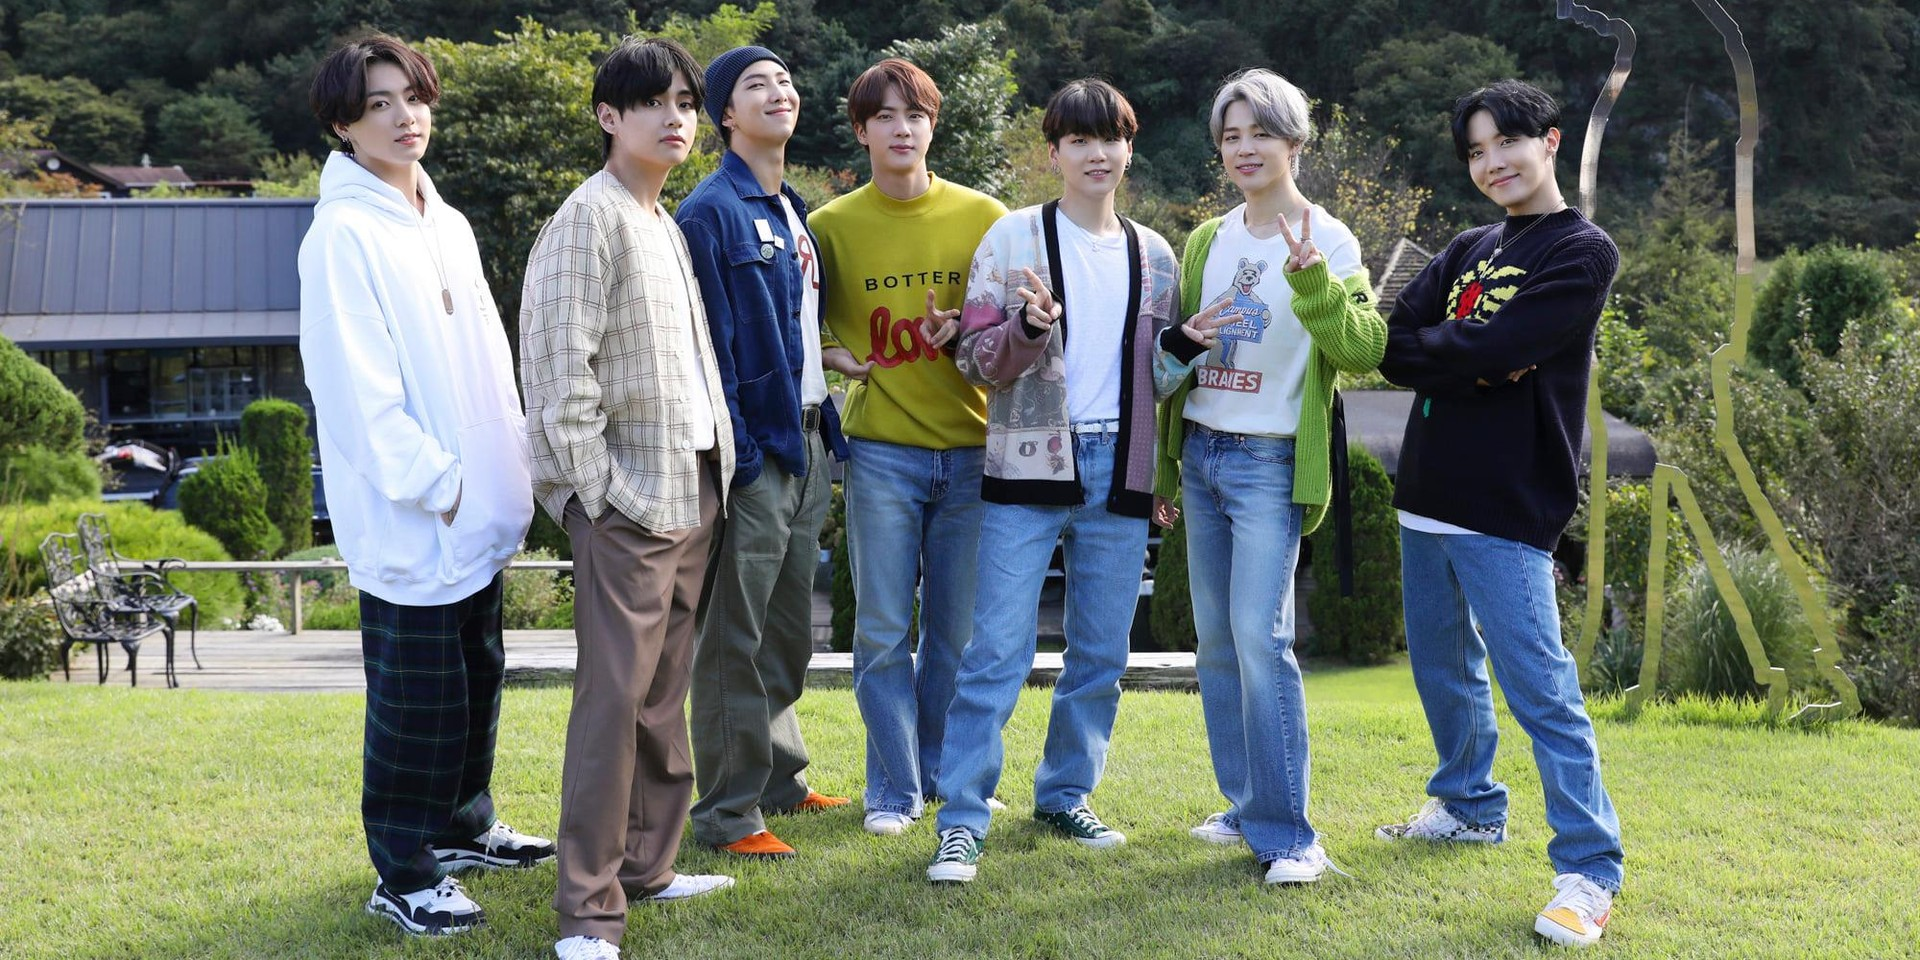 BTS make history as 'Life Goes On' becomes the first non-English song to debut at number 1 on the Billboard Hot 100 charts